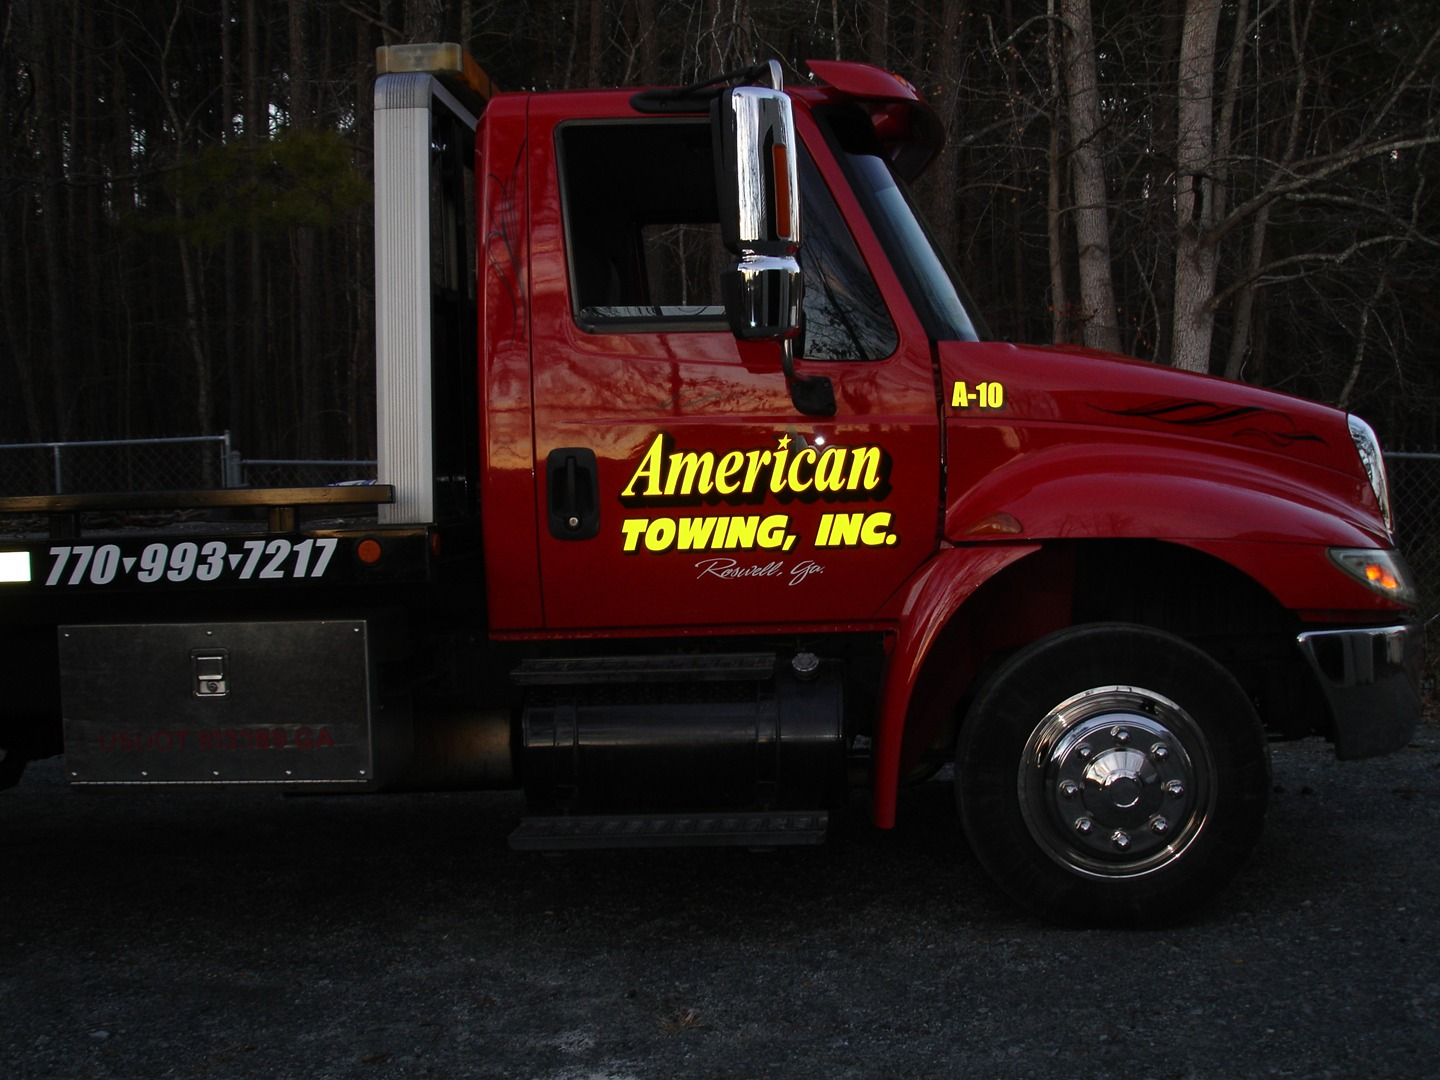 American Towing - reflective.jpg